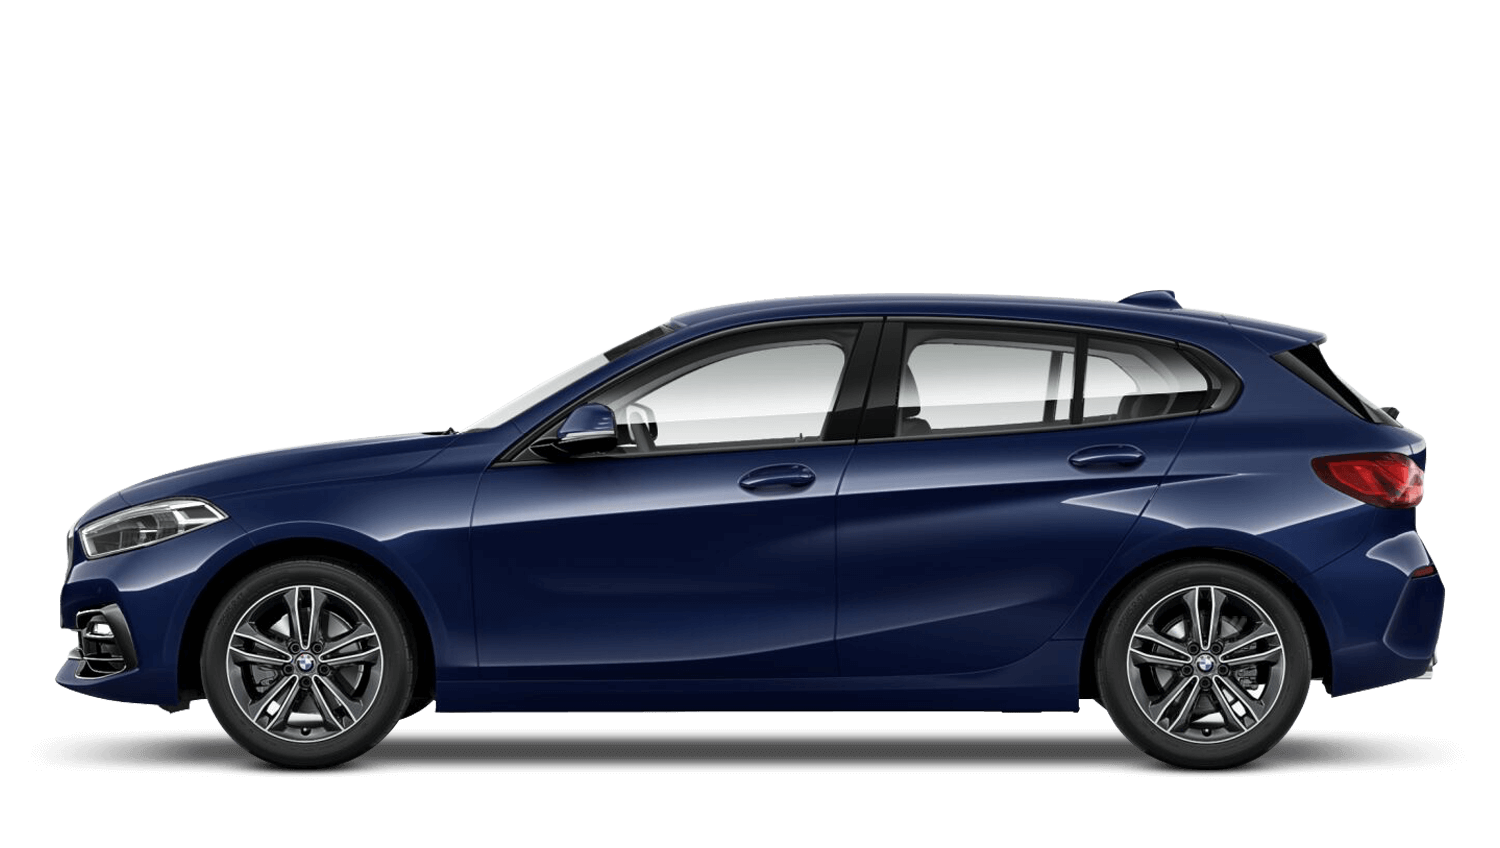 Mediterranean Blue BMW 1 Series Sports Hatch